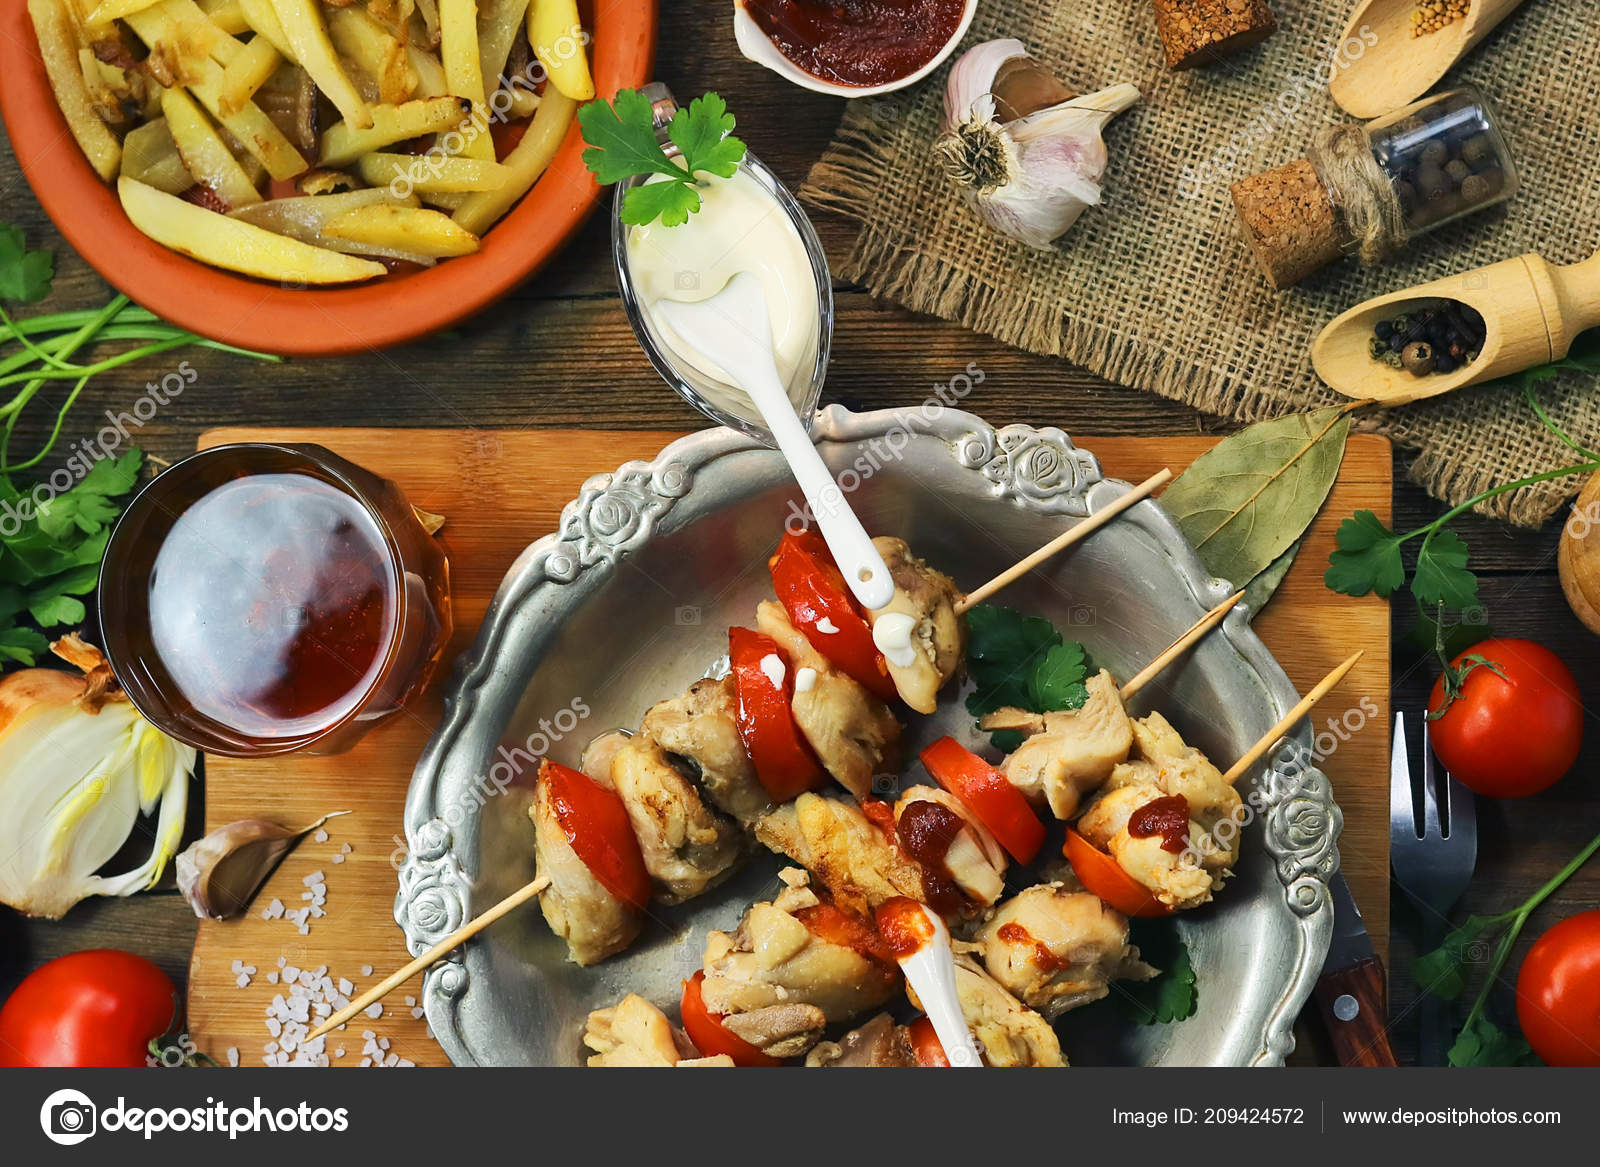 Fried Chicken Meat Wooden Sticks Food Background Stock Photo